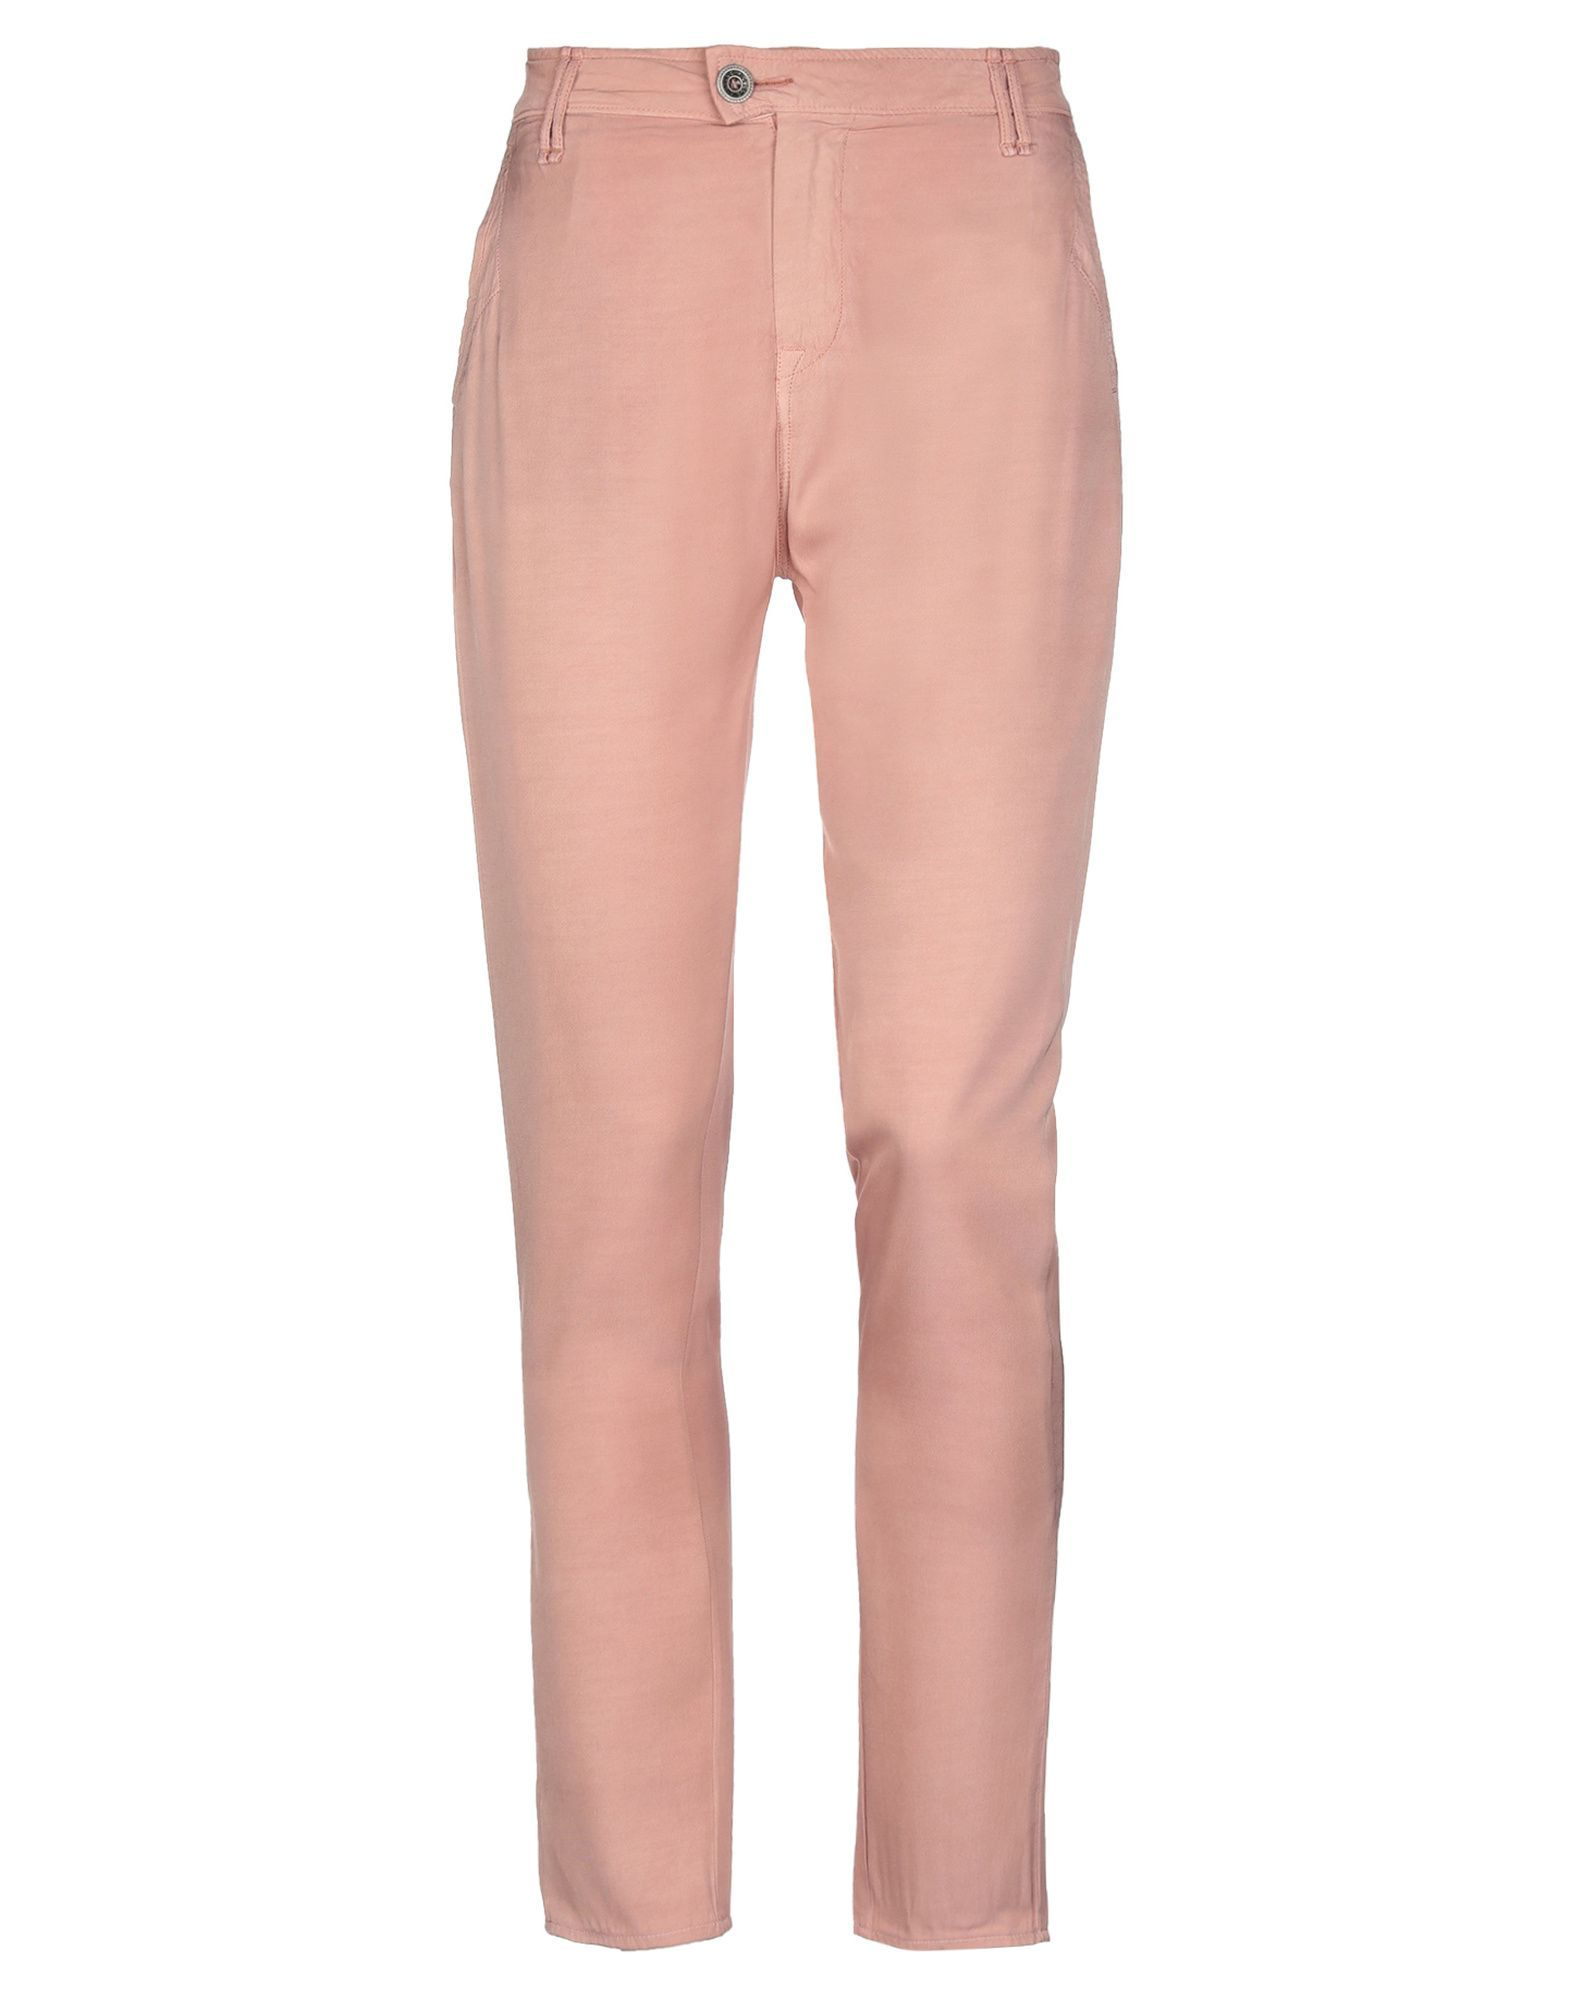 TROUSERS Woman Cycle Pastel pink Viscose